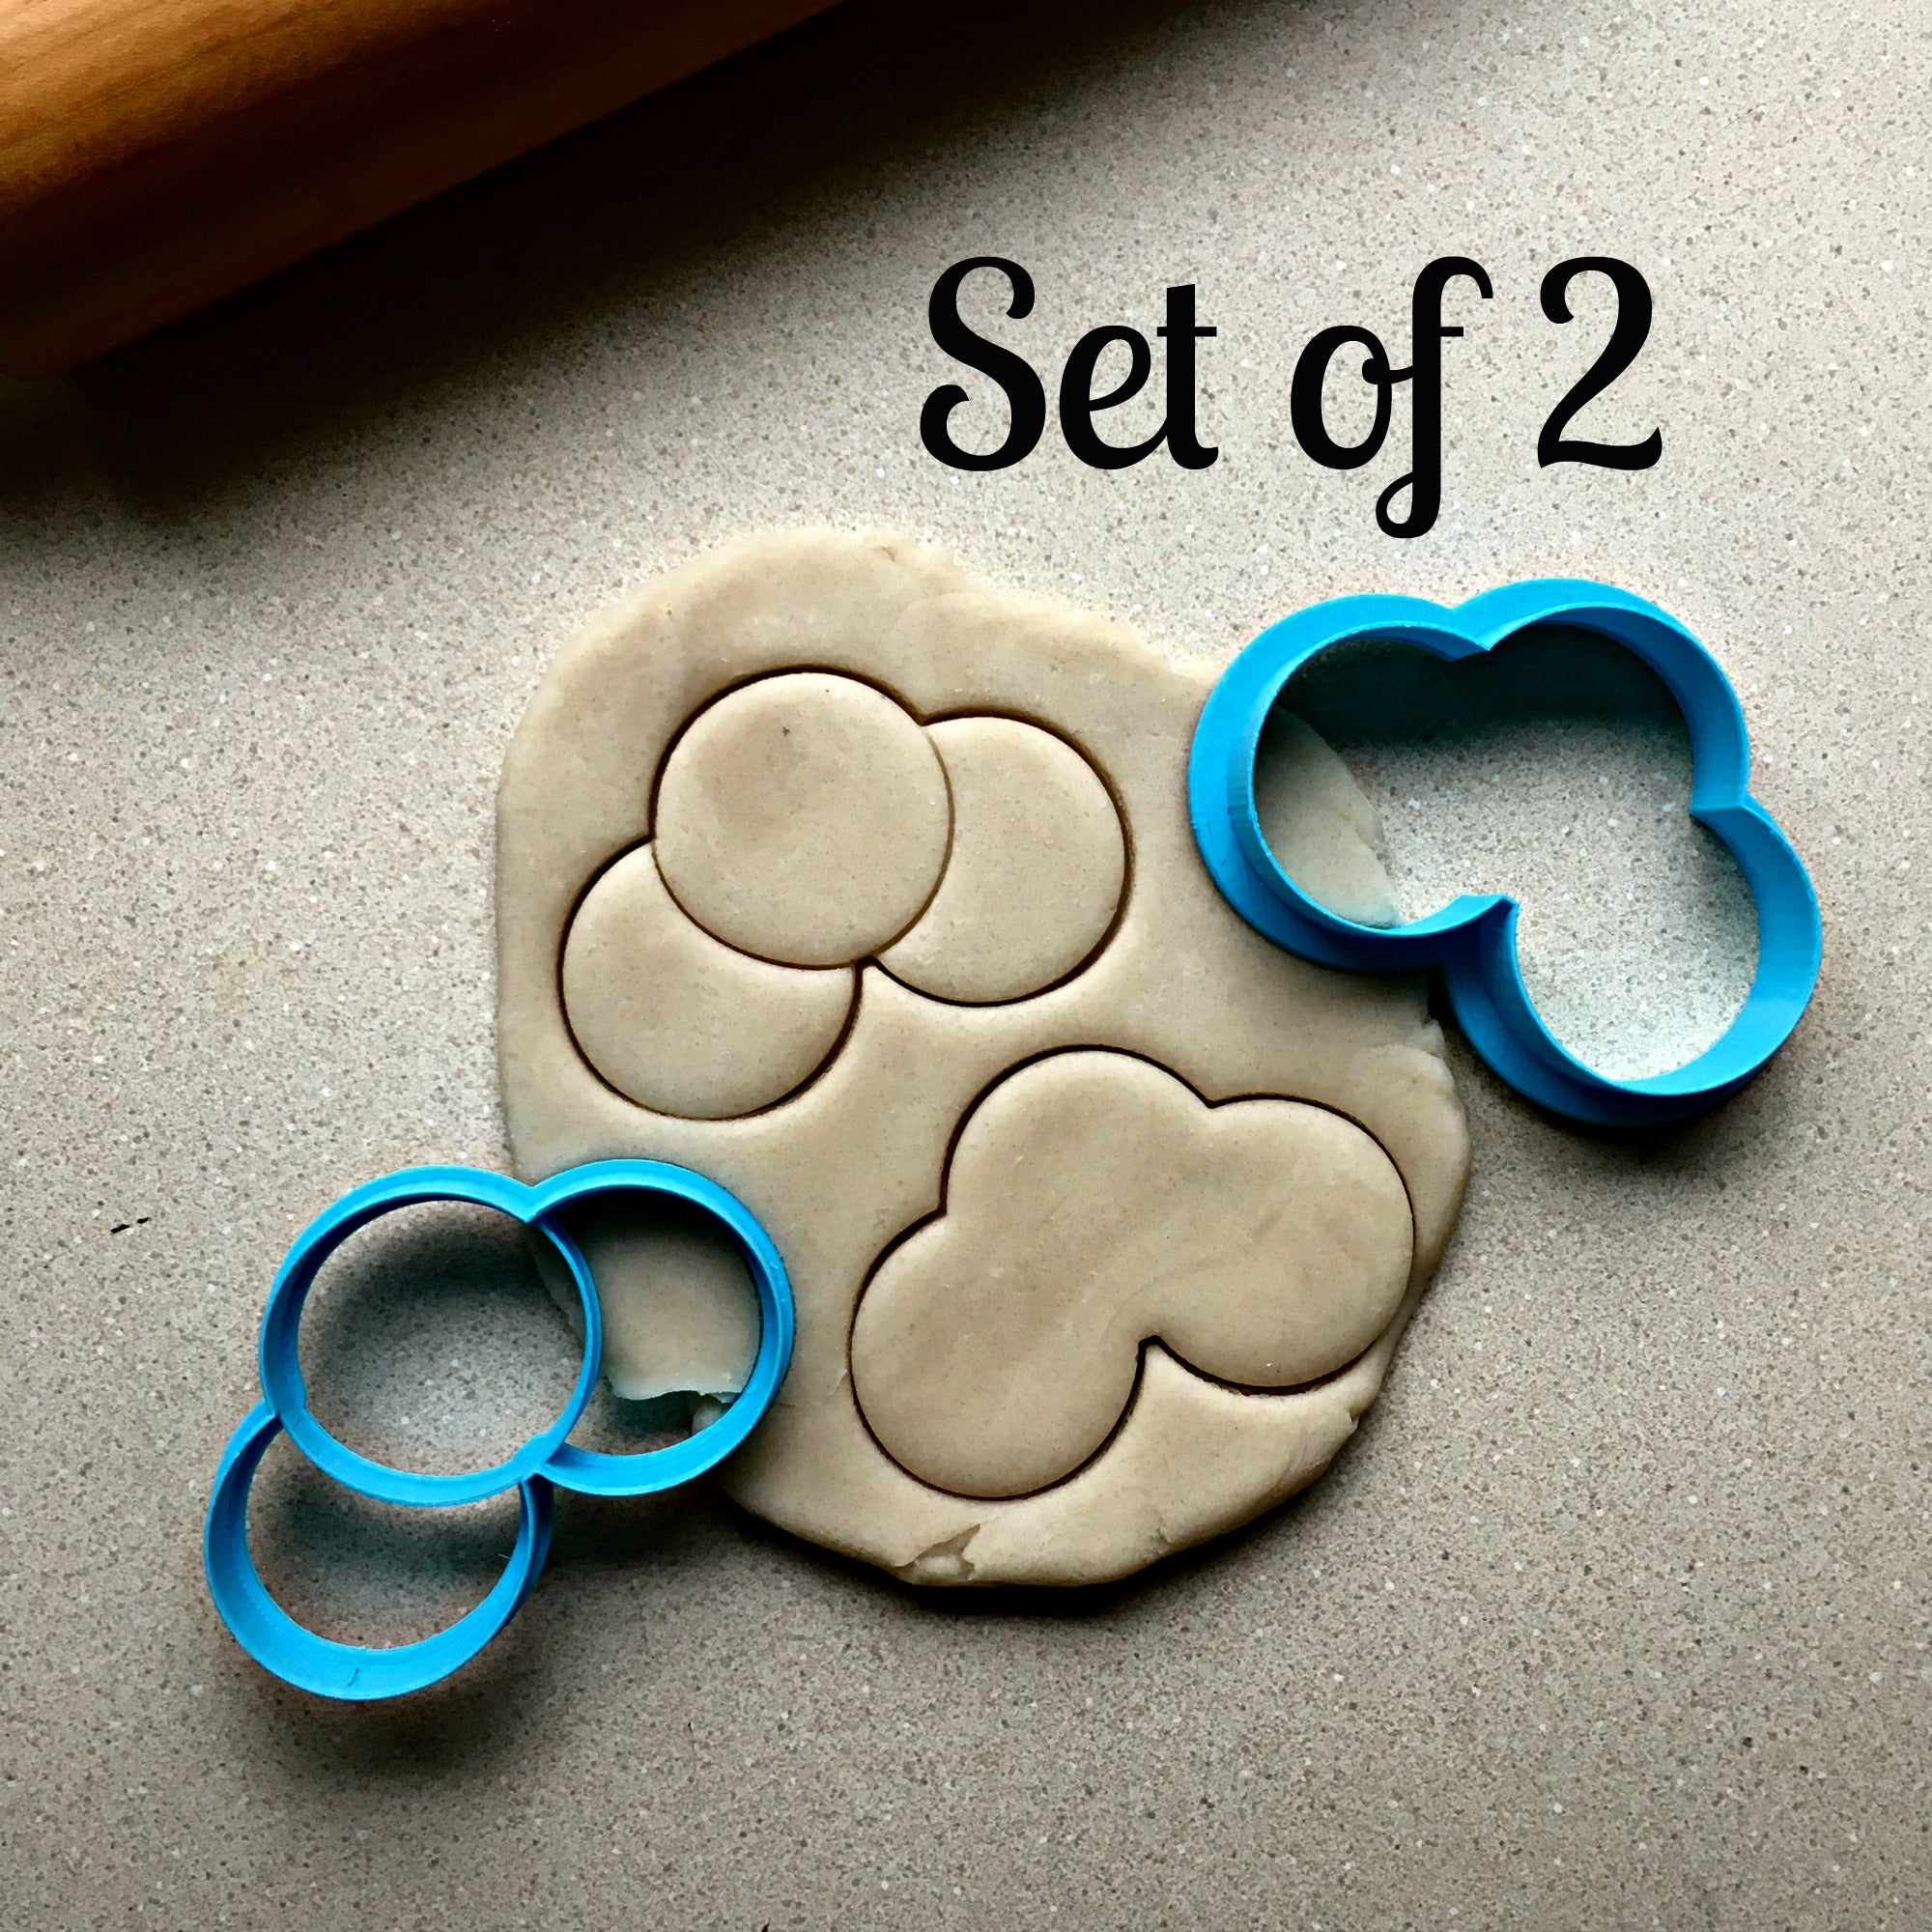 Set of 2 Chestnuts Cookie Cutters/Dishwasher Safe